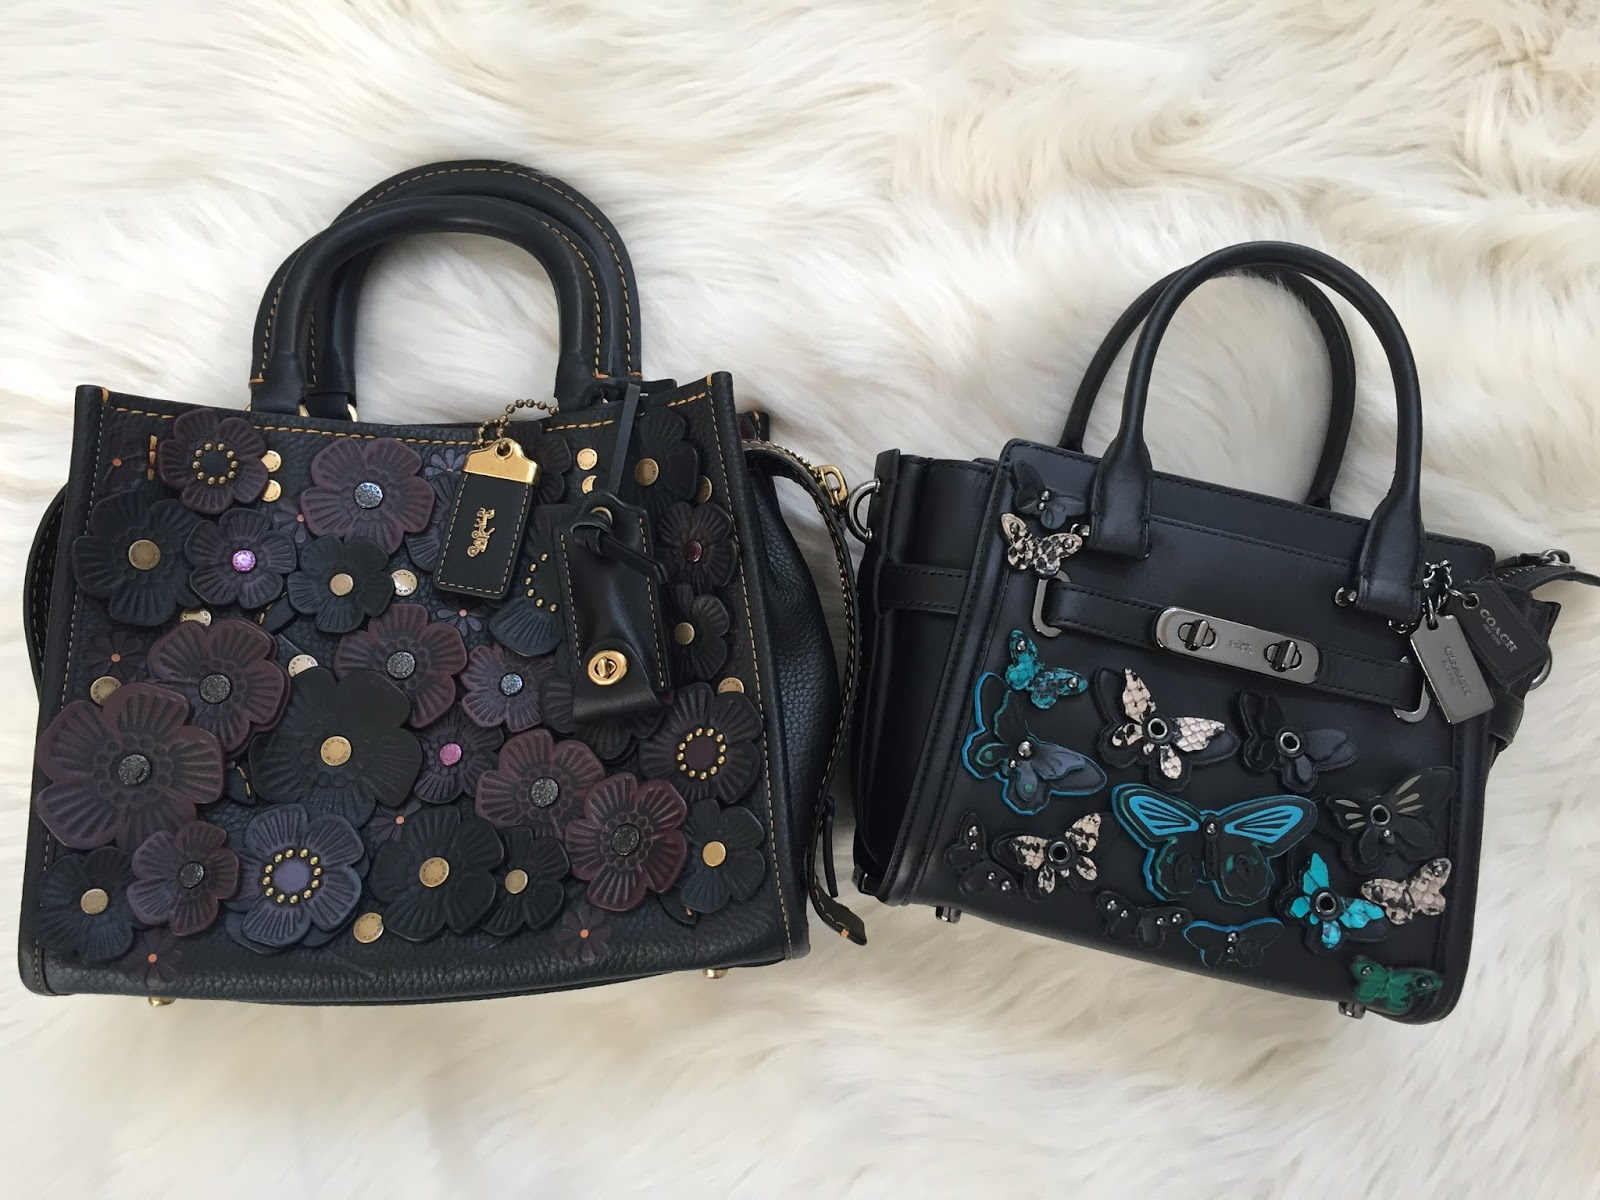 Petite Impact Its National Handbag Day Coach Swagger Wristlet In Pebble Leather Watermelon My First Purchase Was The 21 With Butterflies On It Then I Had Eye A Tea Rose Bag Love Pebbled And Suede Lining